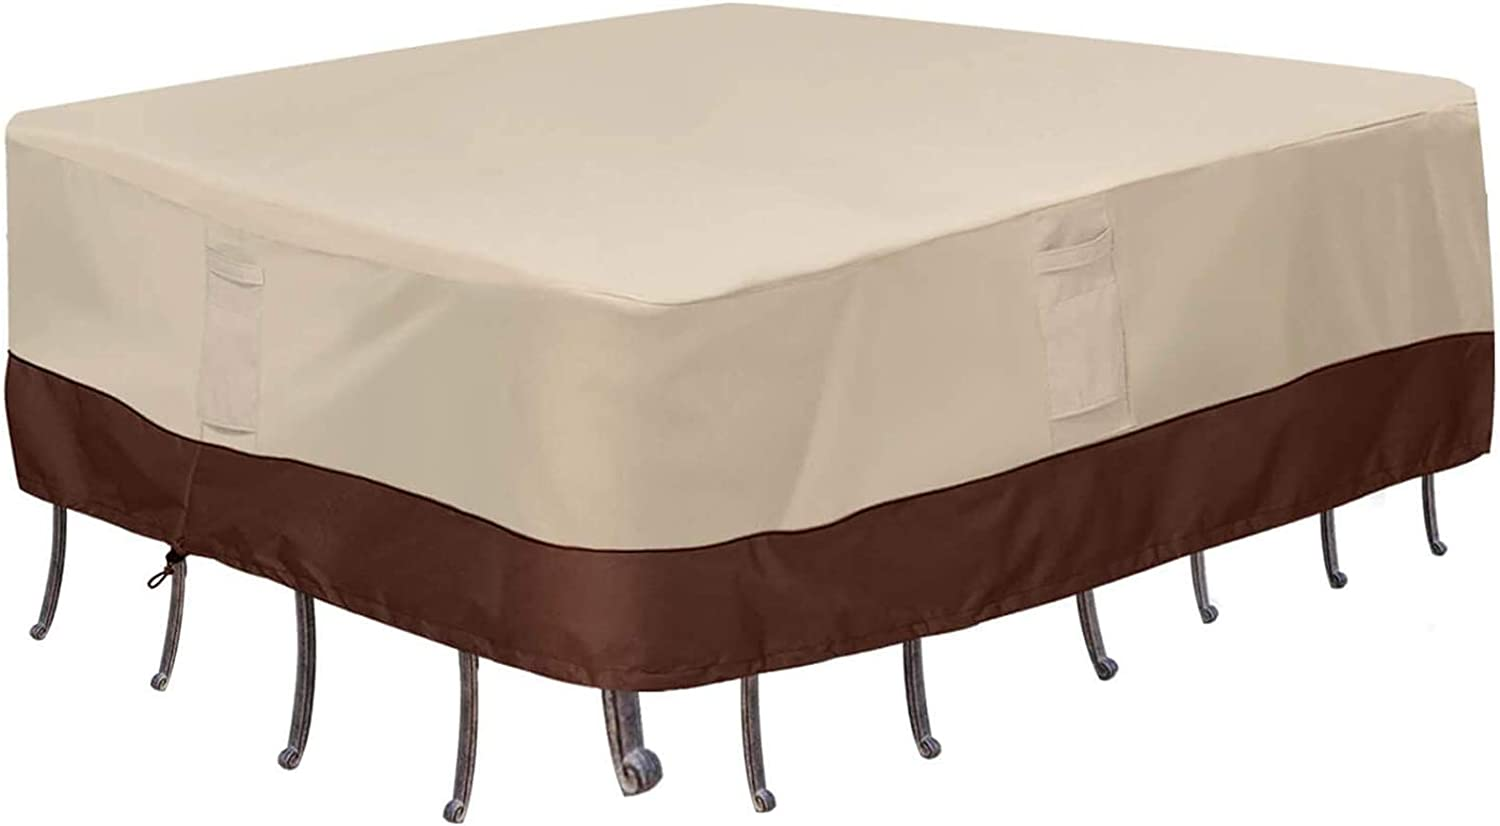 Vailge Waterproof Patio Furniture Set Cover, Lawn Patio Furniture Cover with Padded Handles, Patio/Outdoor Table Cover, Patio/Outdoor Dining Square Table Chairs Cover(Small, Beige & Brown) : Garden & Outdoor